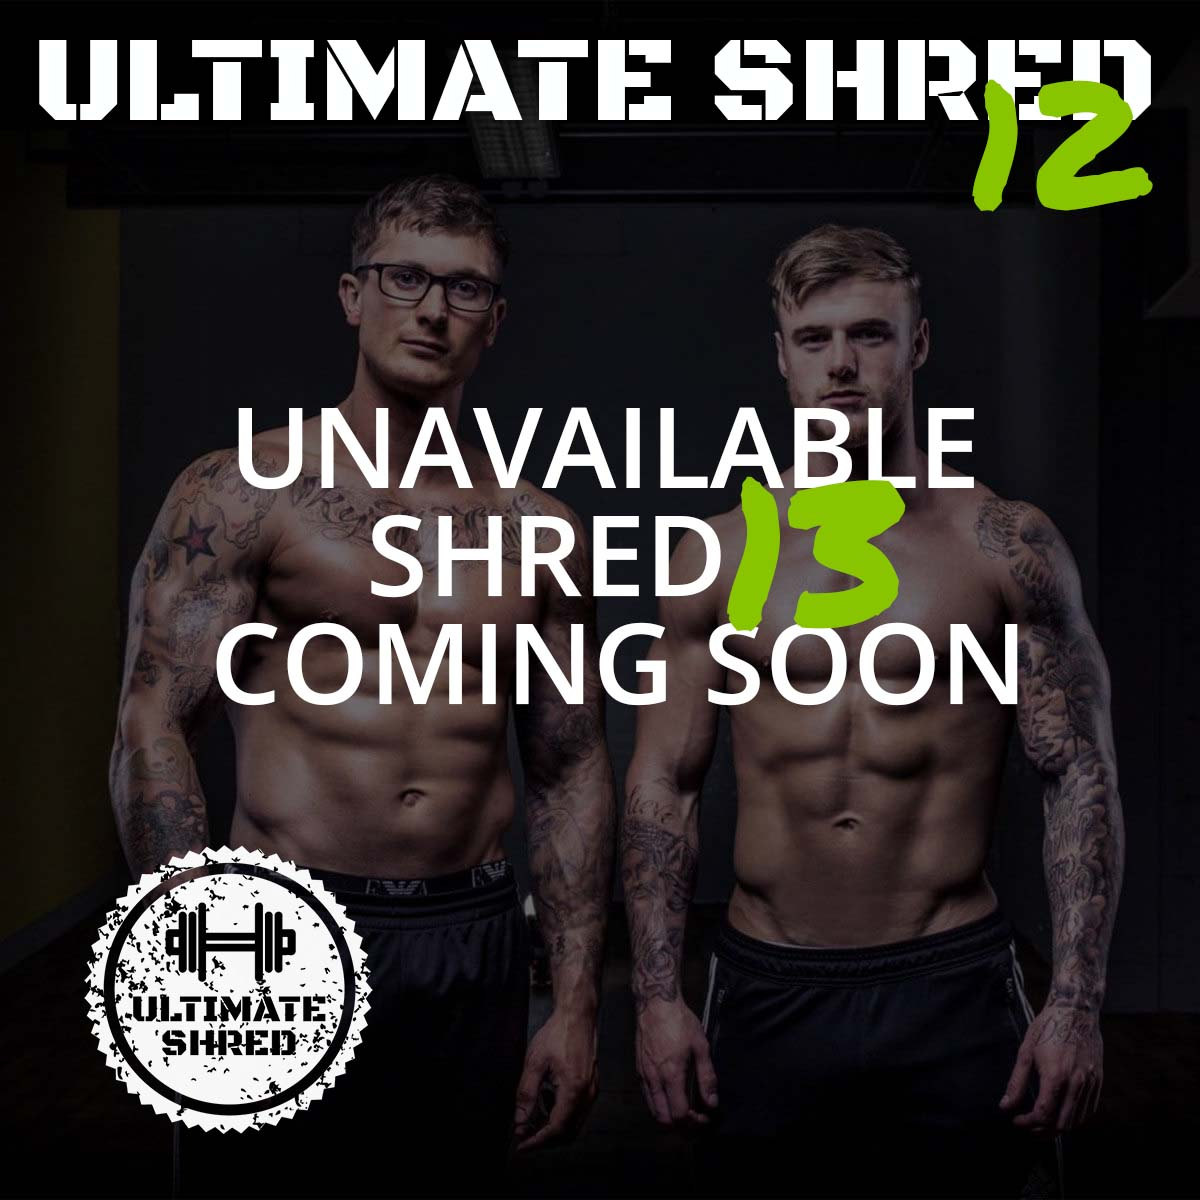 Ultimate Shred 12